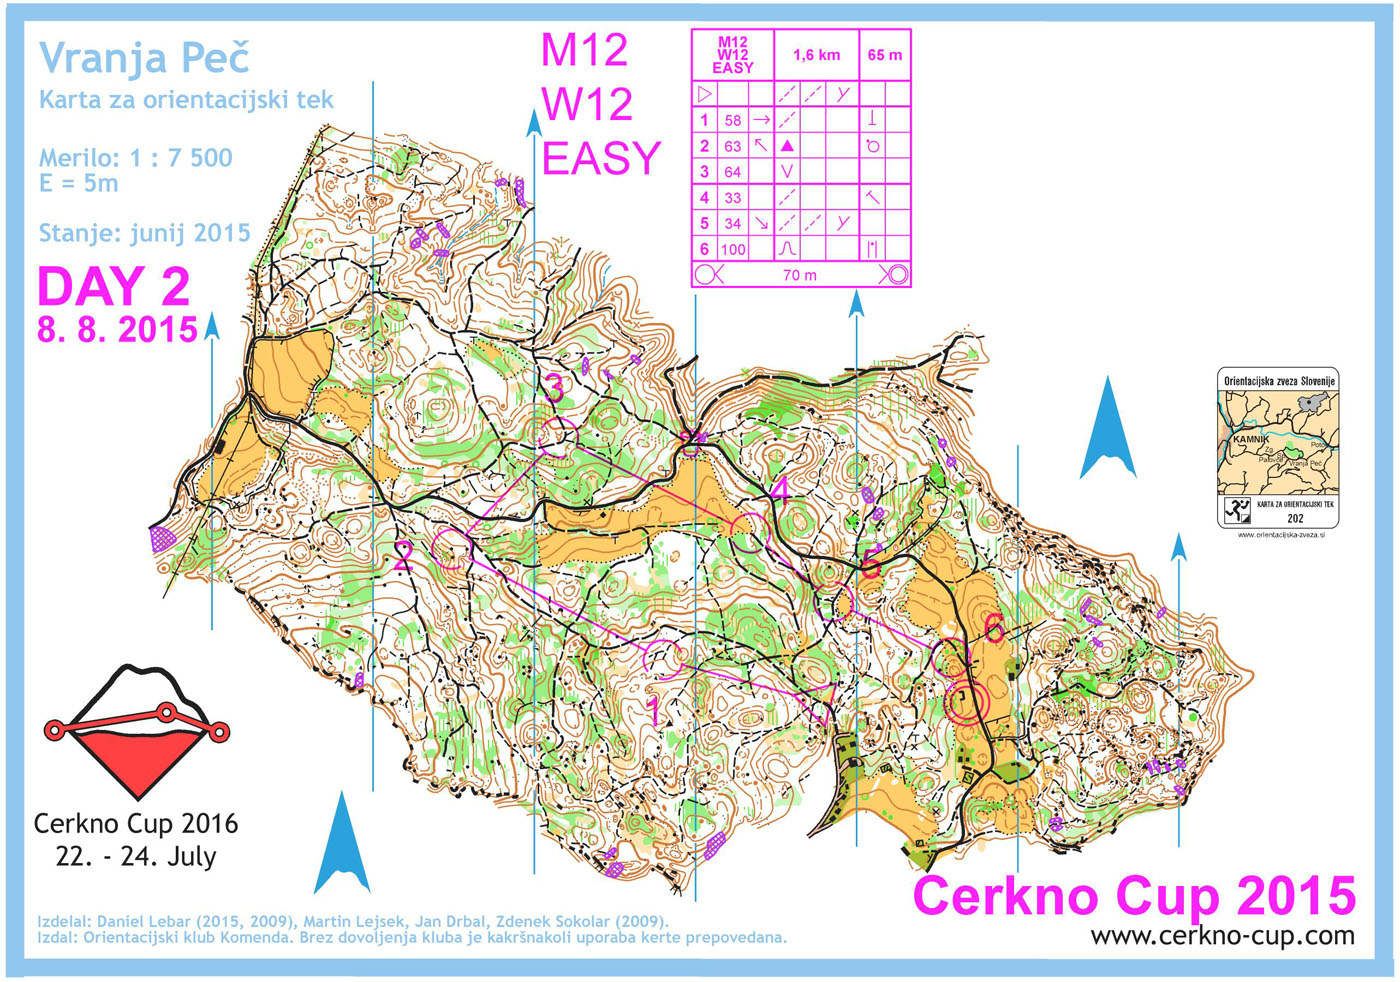 Cerkno Cup - 2015 - DAY 2 - M12, W12, OPEN EASY (08. 08. 2015)